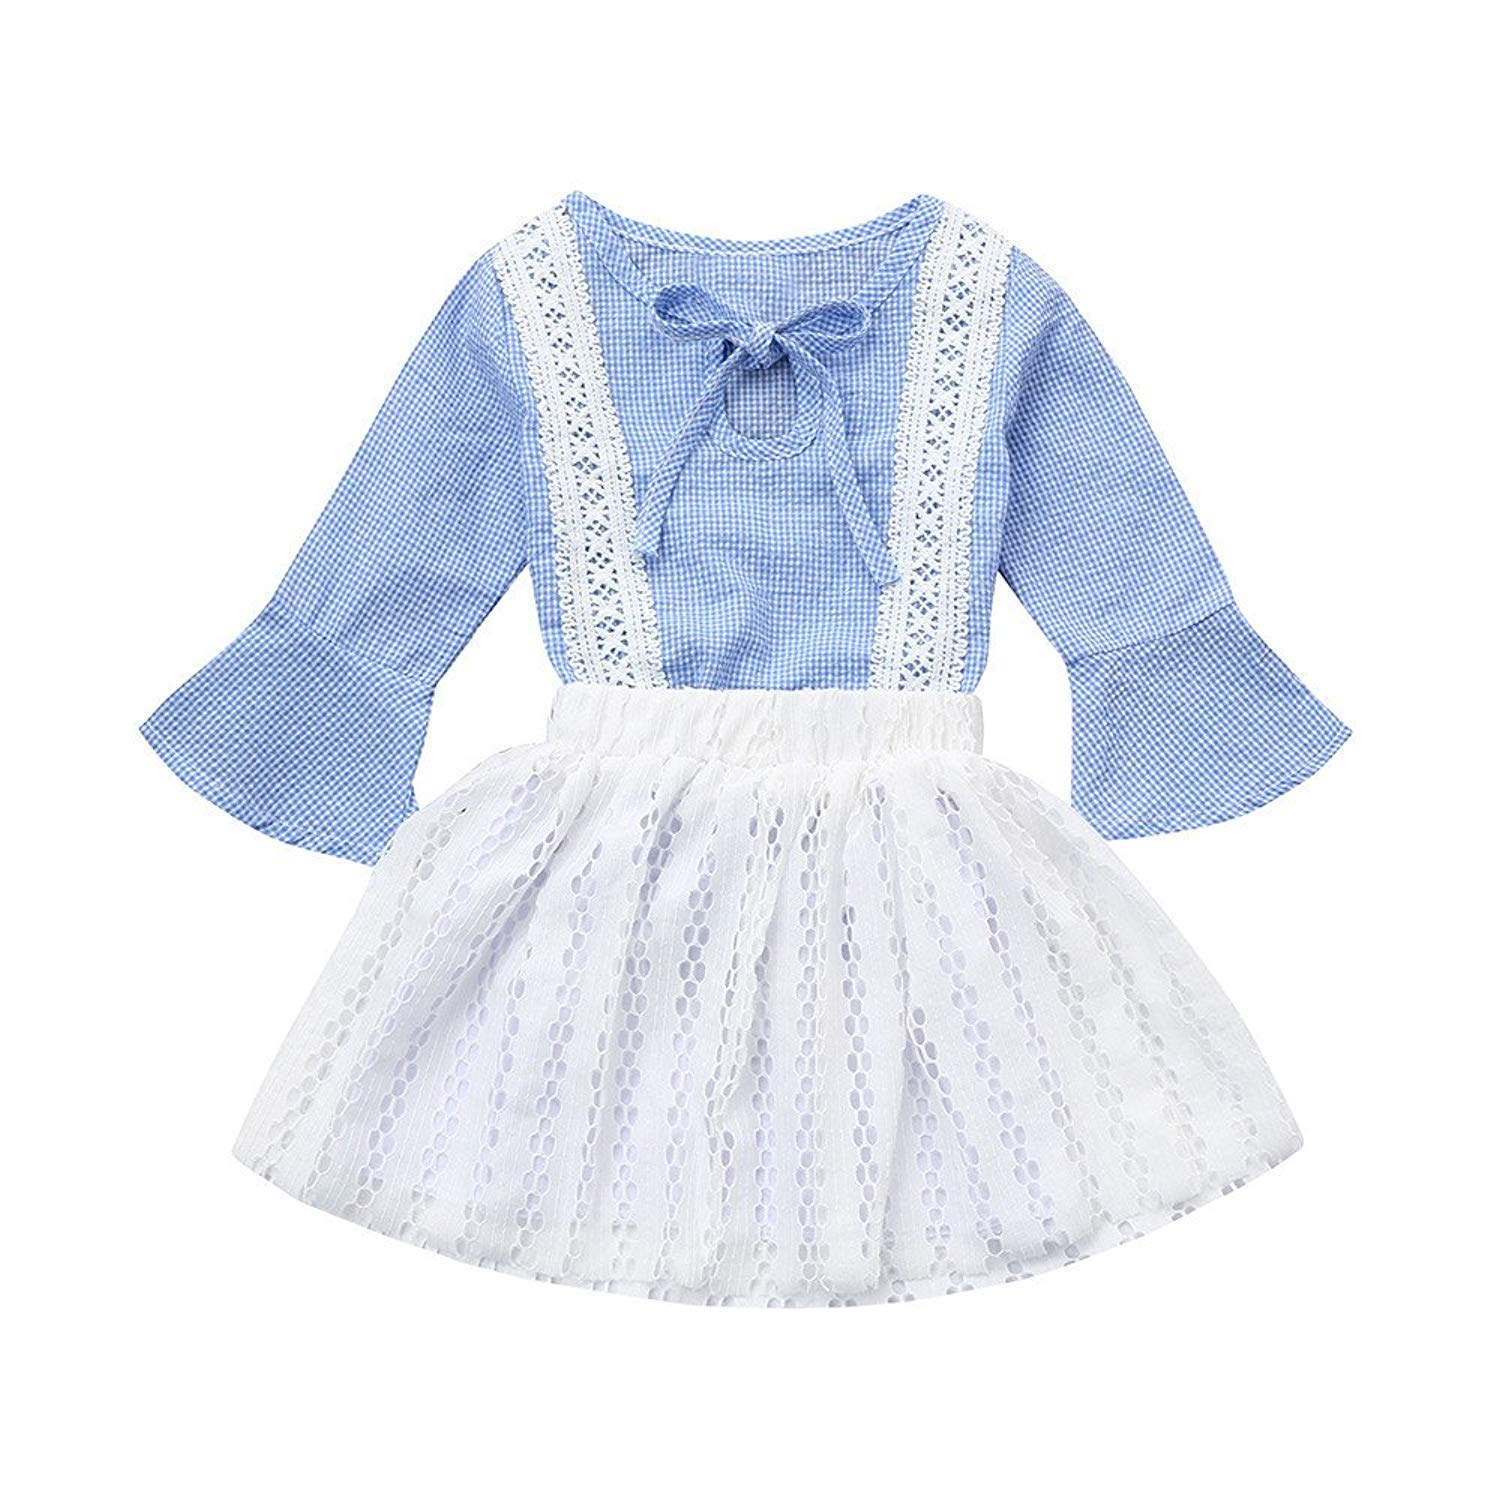 f659d2013bee Get Quotations · Children's Clothing, Firero Toddler Kids Baby Girls Plaid  Lace T Shirt Tops Skirt Dress Outfits